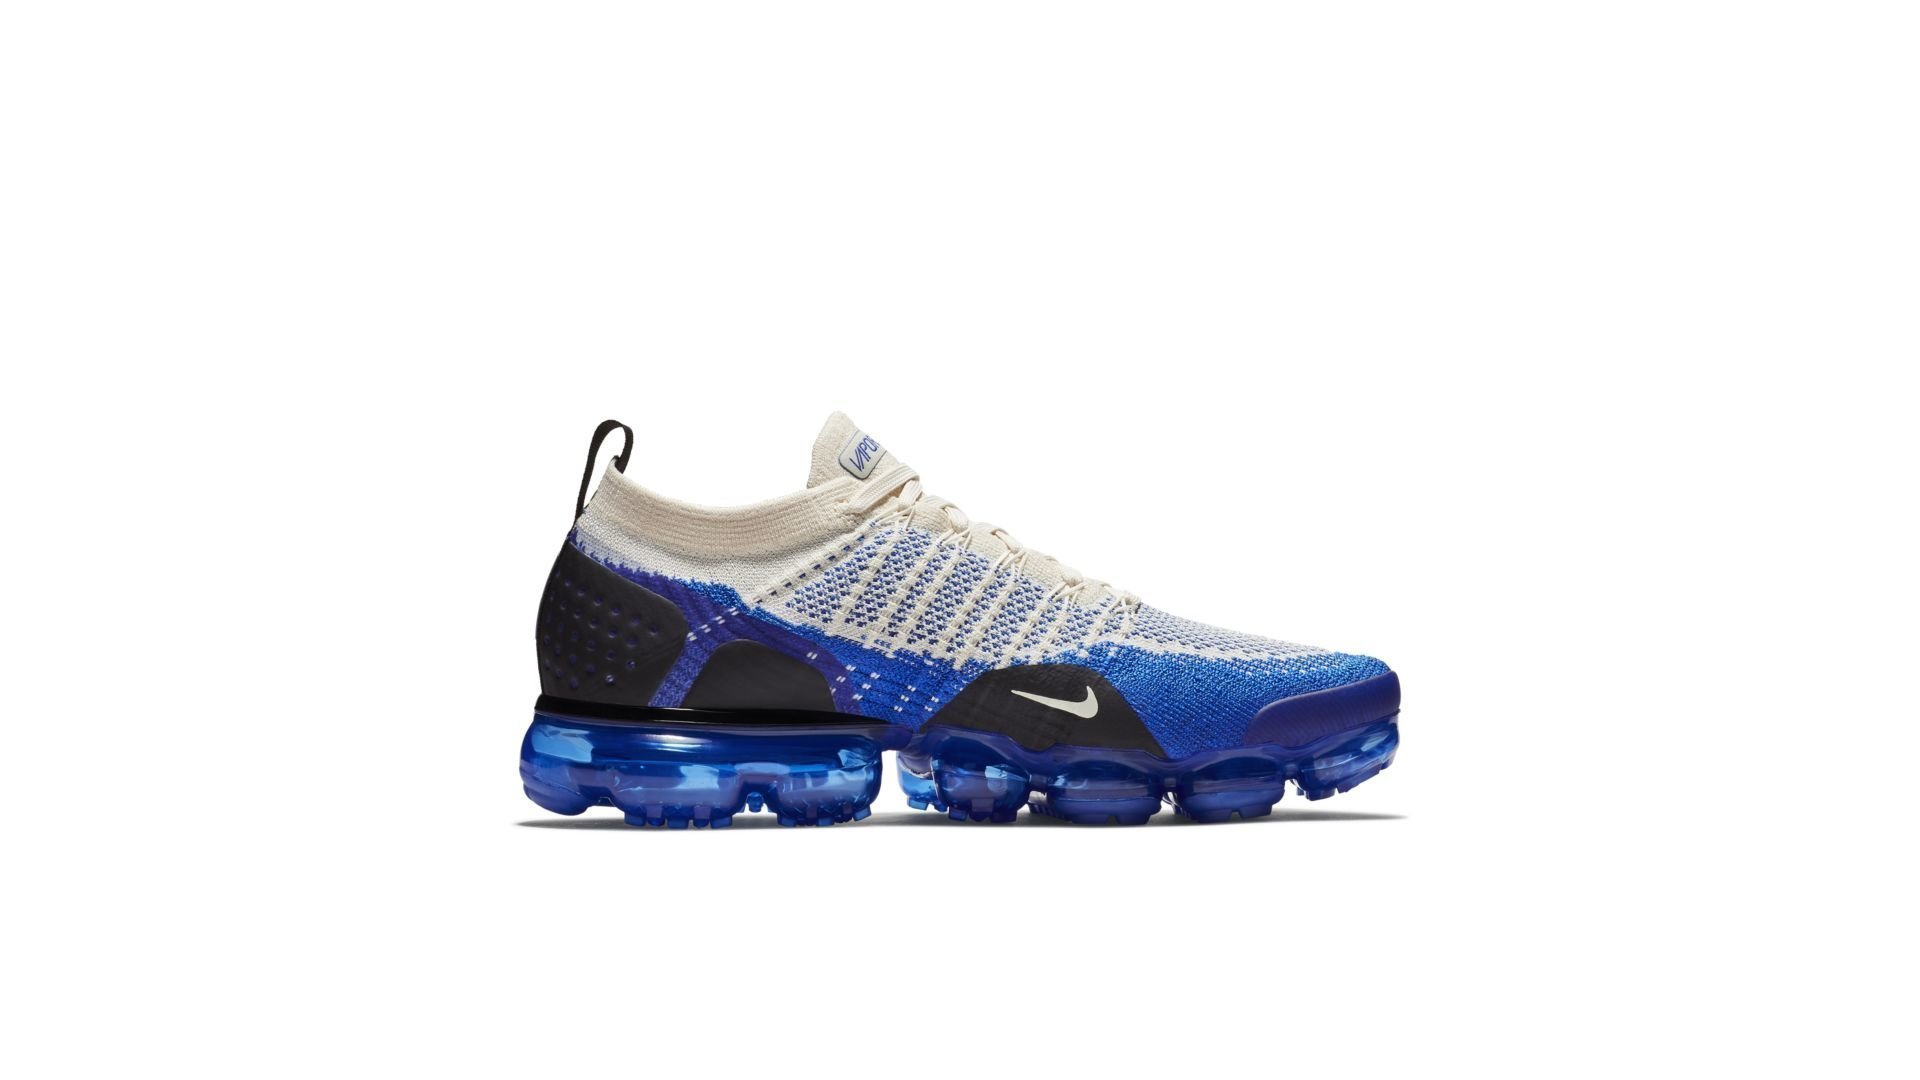 Nike Air VaporMax 2 Light Cream Racer Blue (942842 204)